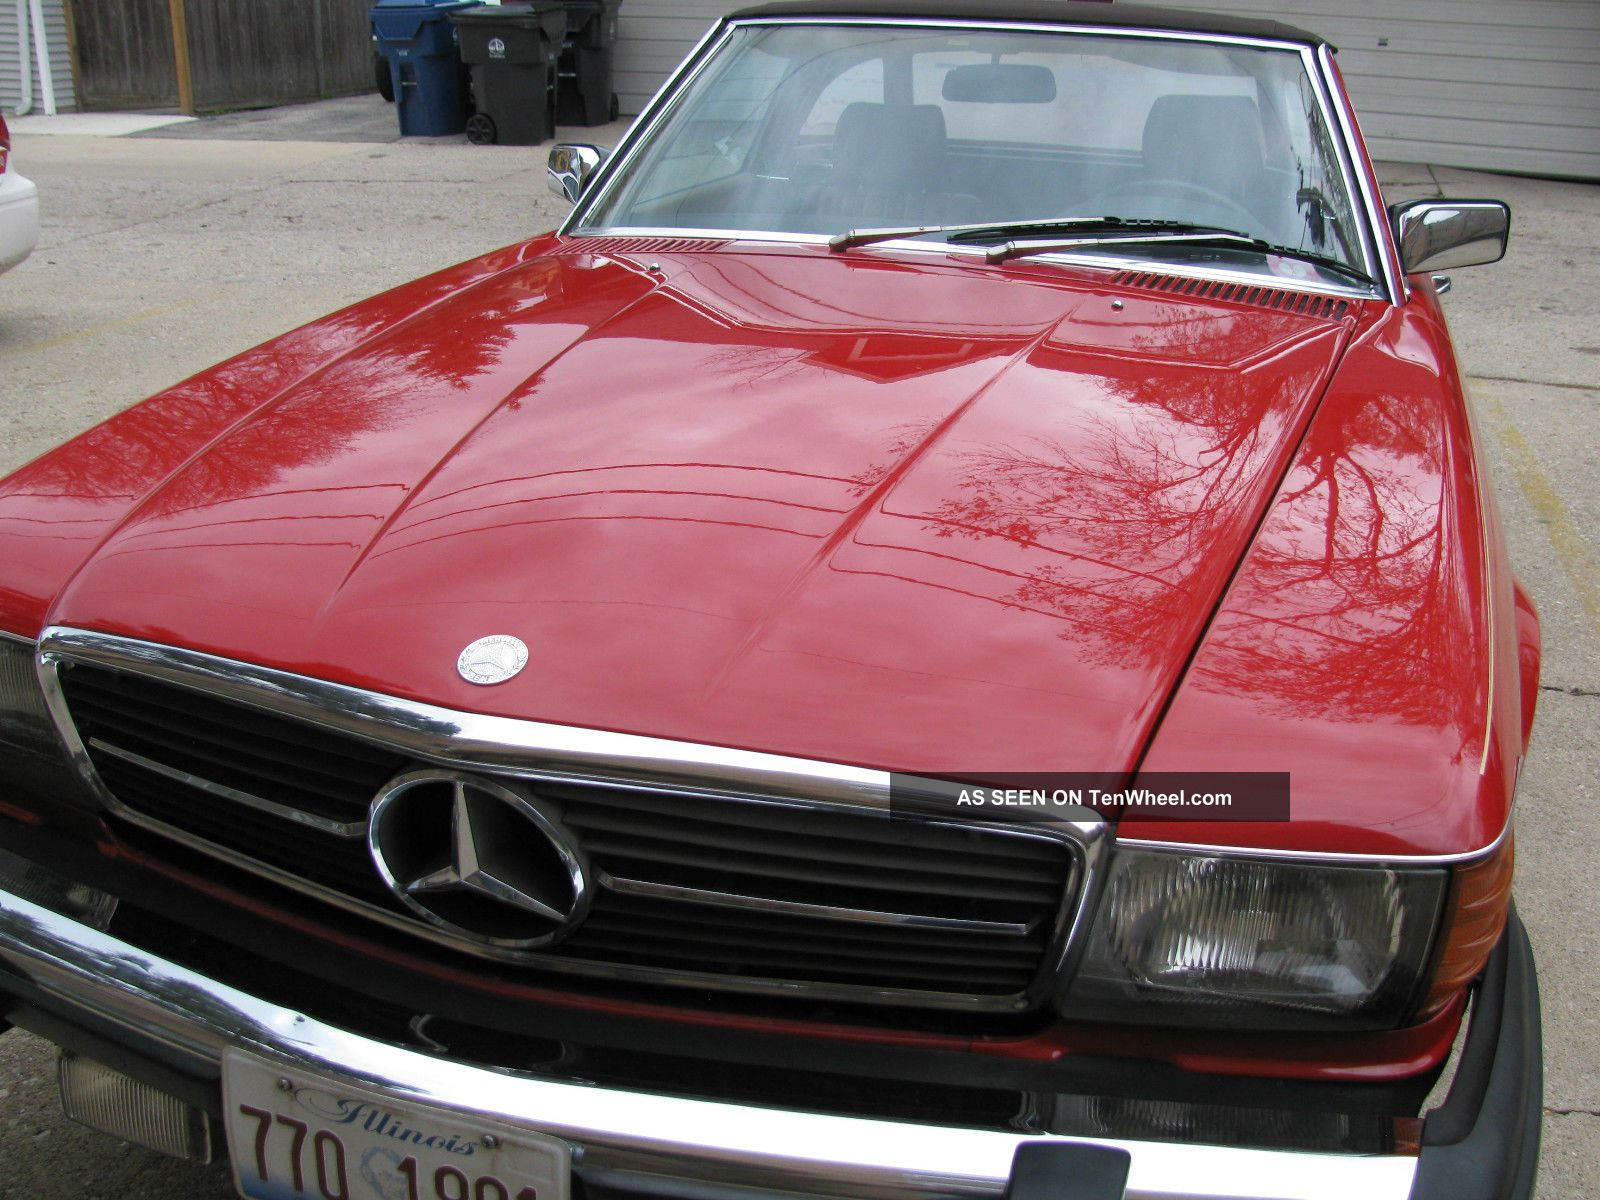 Mercedes Benz 380 Sl Roadster,  1985 SL-Class photo